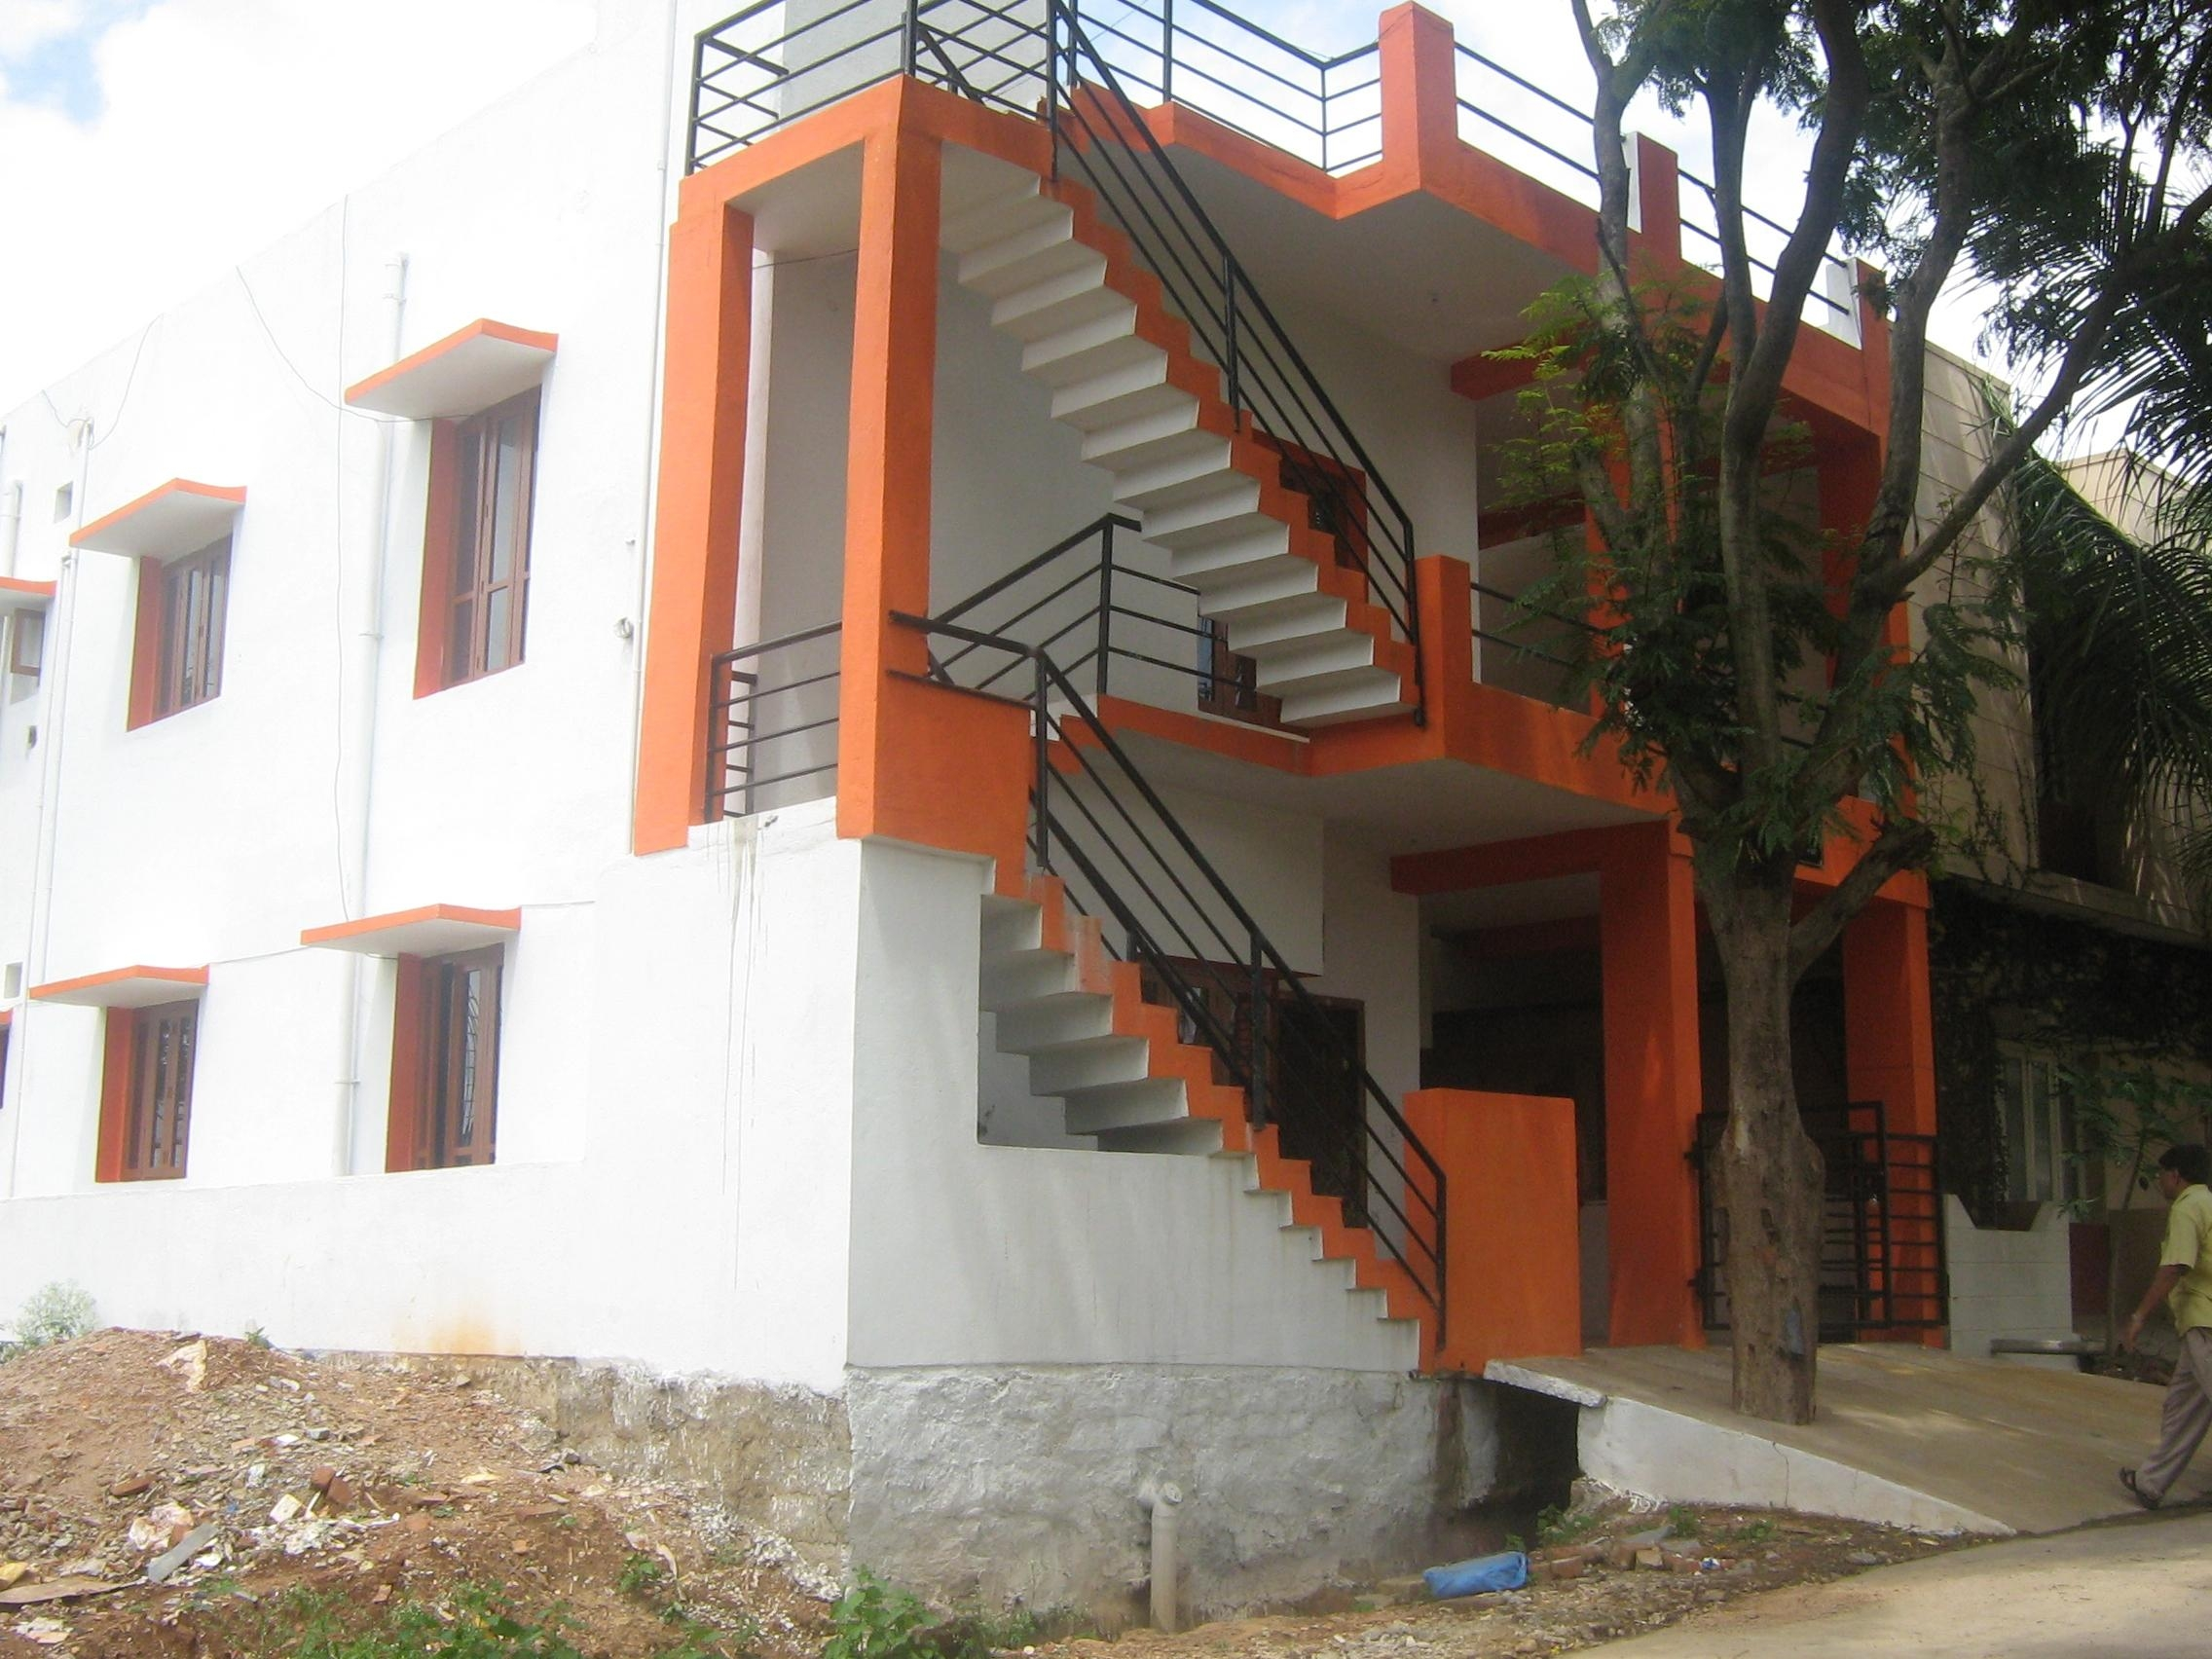 Exterior Staircase Grill Designs Indian House   Exterior Staircase Designs For Indian Homes   House   Apartment   Grill   Step   Wall